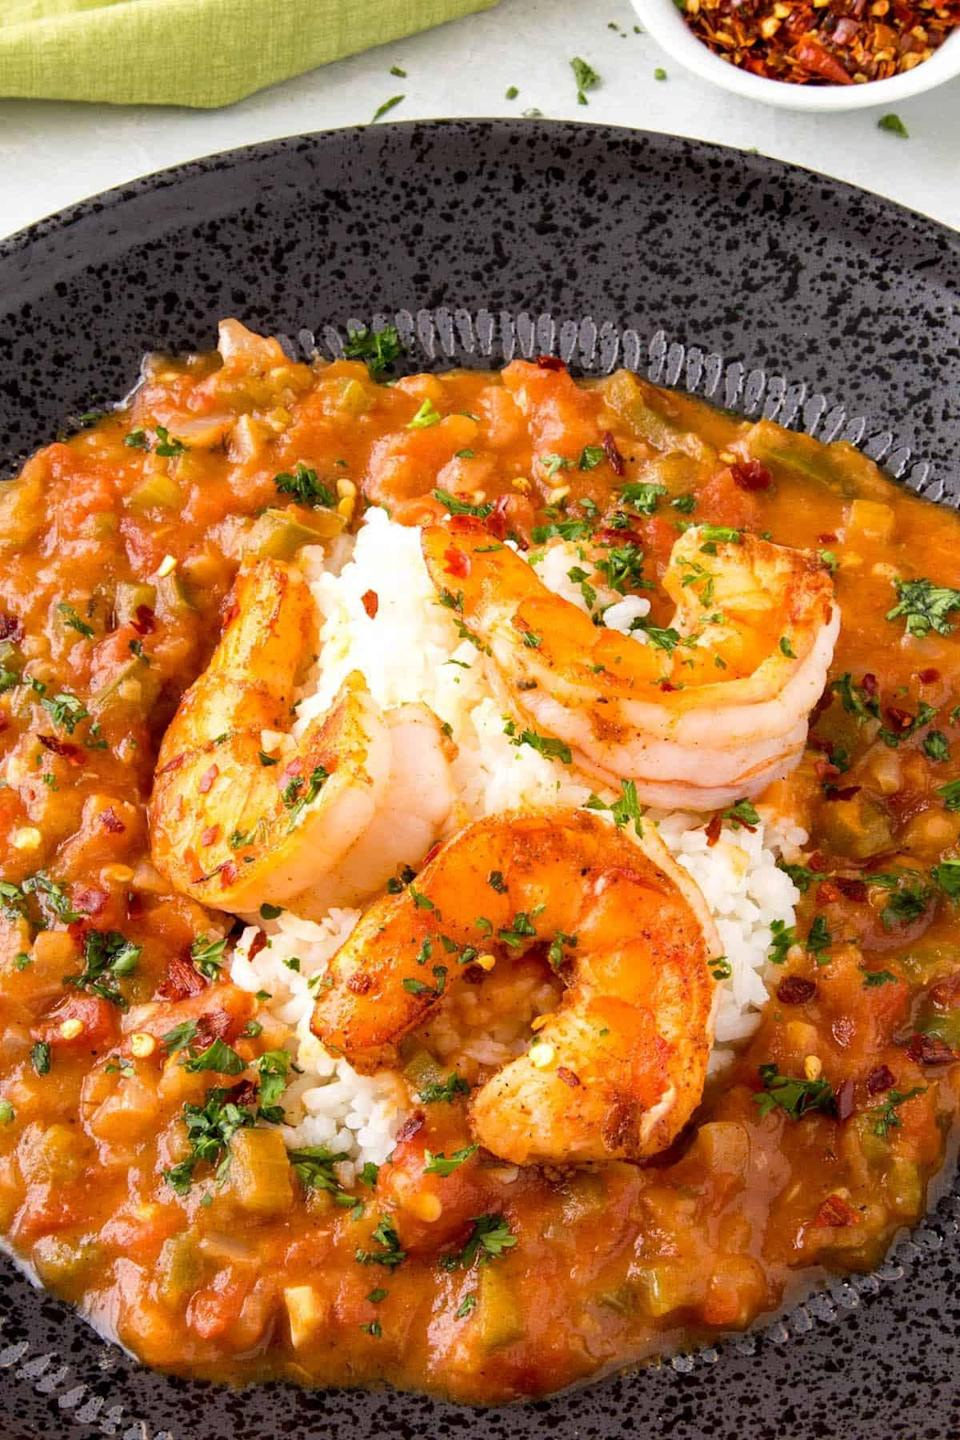 """<p>Craving the flavors of the South? Oh, do we have the recipe for you. This shrimp étouffée features mouthwatering shrimp that's drenched in rich tomato sauce and sprinkled with vibrant seasonings. This dish will make your whole home smell good, so make sure you whip up enough for everyone.</p> <p><strong>Get the recipe</strong>: <a href=""""https://www.chilipeppermadness.com/recipes/shrimp-etouffee/"""" class=""""link rapid-noclick-resp"""" rel=""""nofollow noopener"""" target=""""_blank"""" data-ylk=""""slk:shrimp étouffée"""">shrimp étouffée</a></p>"""